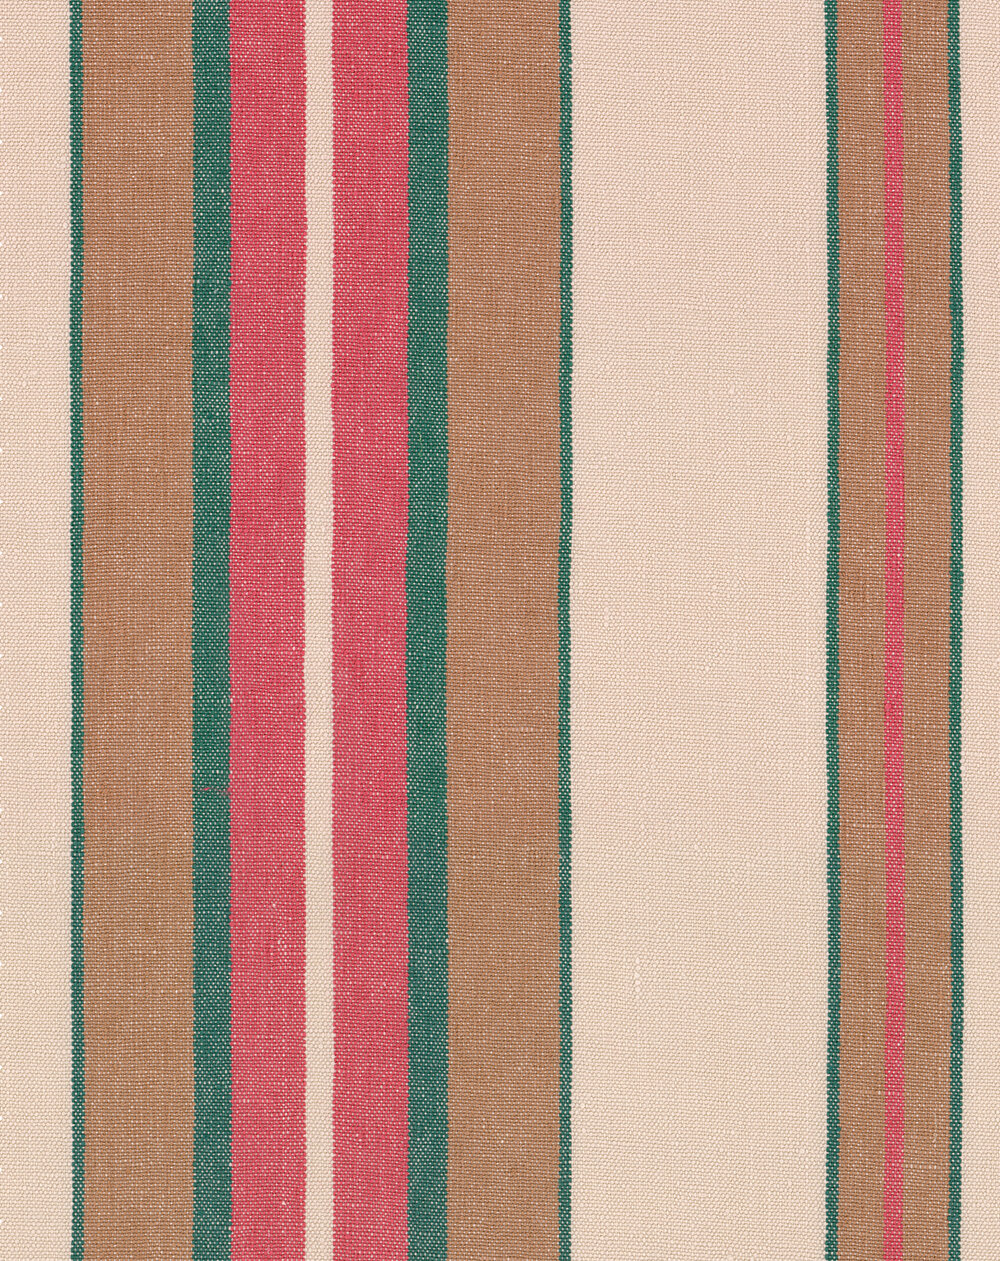 Herina Stripe Fabric - Brown and Pink - by Mind the Gap